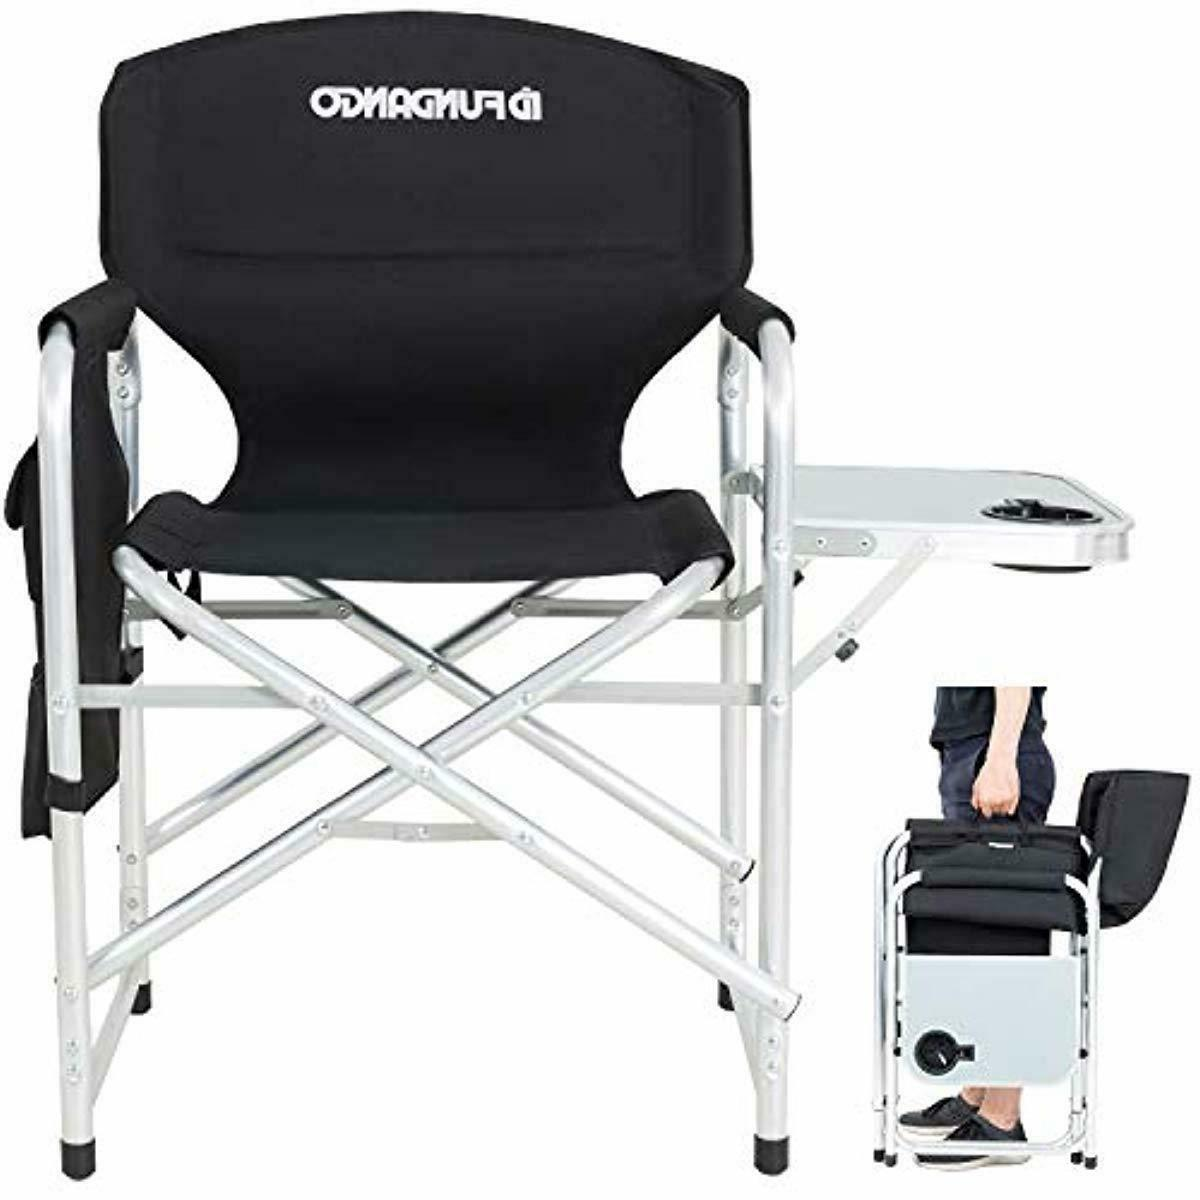 lightweight folding directors chair portable camping chairs